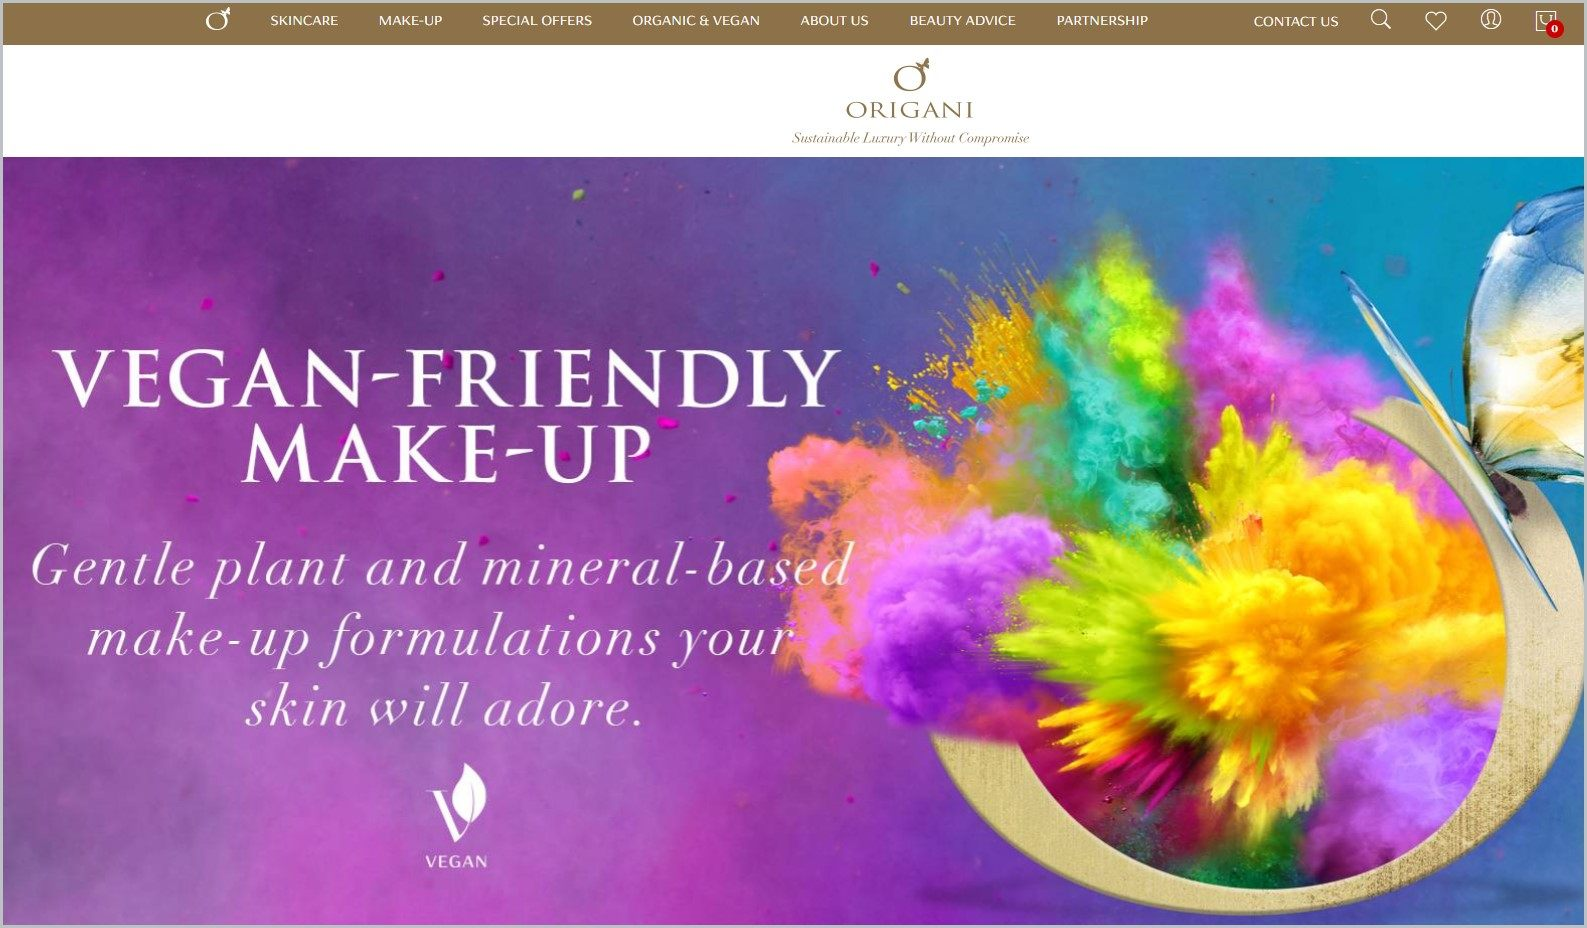 screenshot of Origani homepage, with gold navigation bar at the top, underneath is the website's name, it showcases a burst of different colored powder